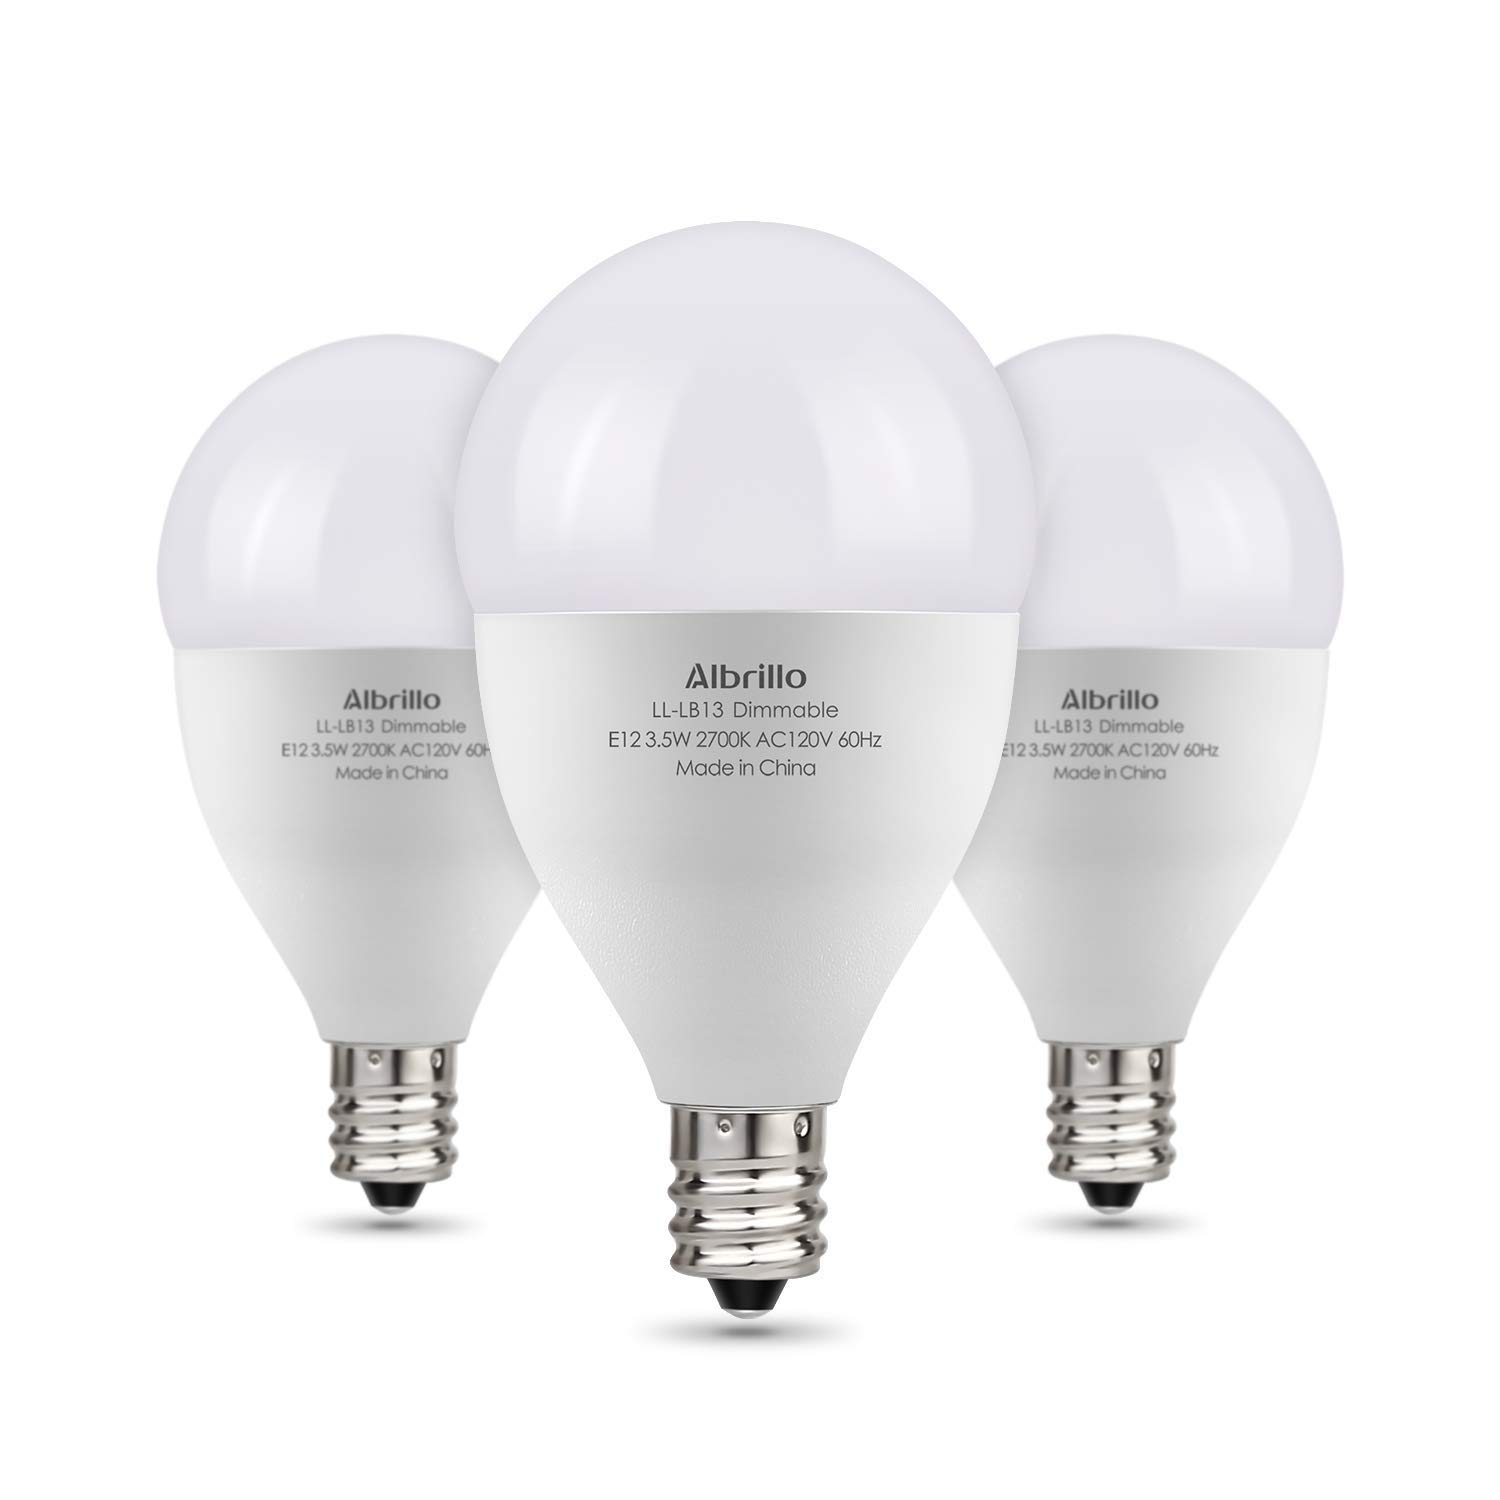 Albrillo Dimmable LED Light Bulbs E12 Bulb, 40 Watt Incandescent Equivalent, Warm White 2700K, 3 Pack